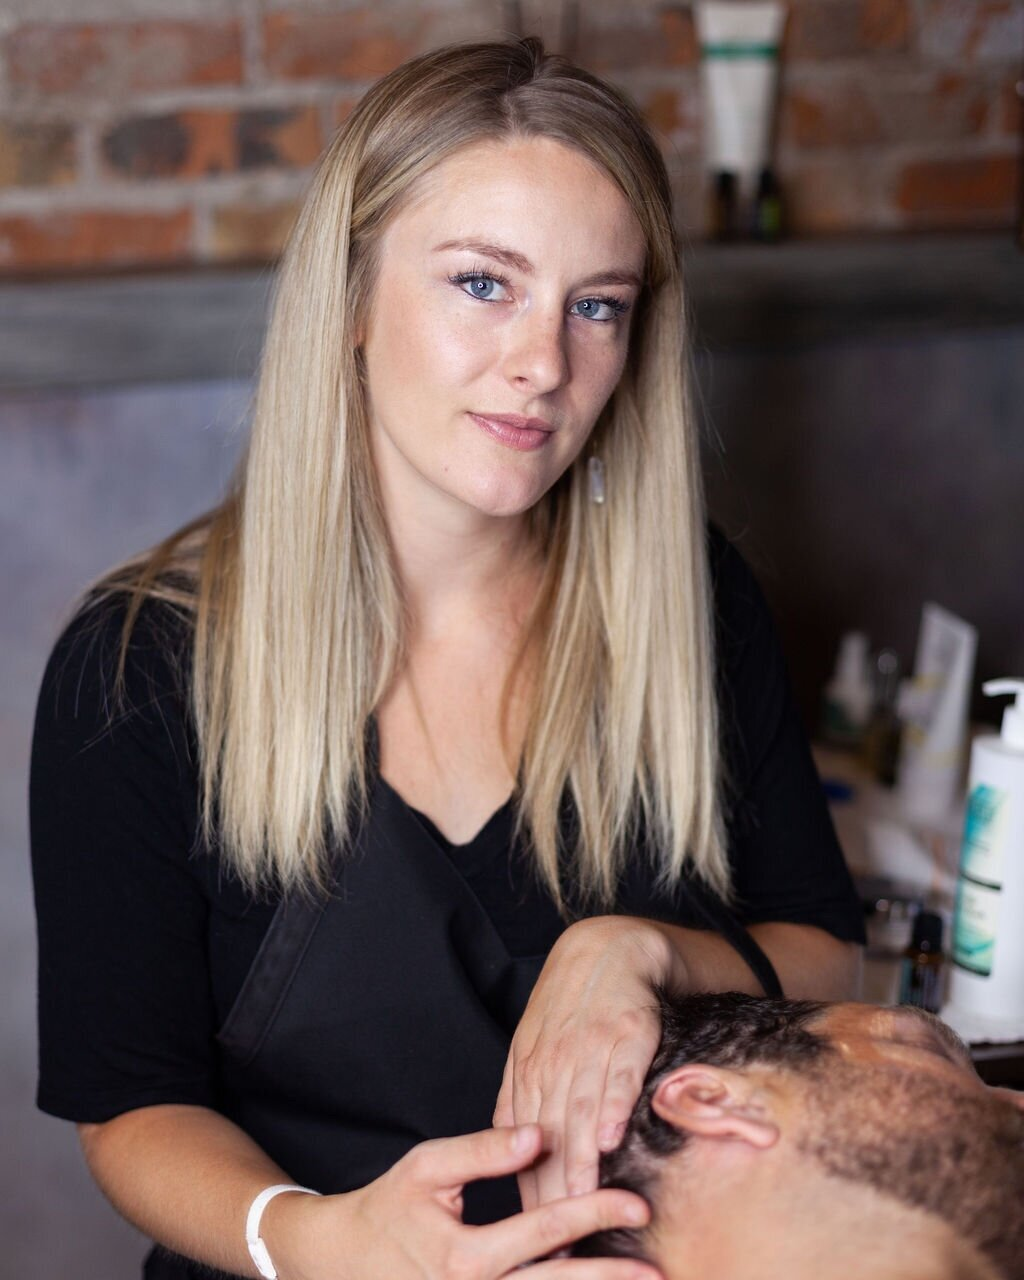 Shelbie Mortensen - Owner/Master Esthetician, Sugaring Practitioner, & Lash ArtistShelbie, a local to Utah, moved to Ogden in 2012 and instantly fell in love with the unique city. She recently graduated from her Master Esthetics Program at the five star rated Avalon School of Cosmetology. With Shelbie's completion brings fresh learning experience and insight to the ever-changing field of skincare. She stays grounded by staying connected to the outdoors enjoying the beautiful terrain Utah has to offer while hiking, fly fishing and skiing. Shelbie's strong will, work ethic, passion and eagerness to learn and progress is what brings a fresh, modernistic approach to the overall team.